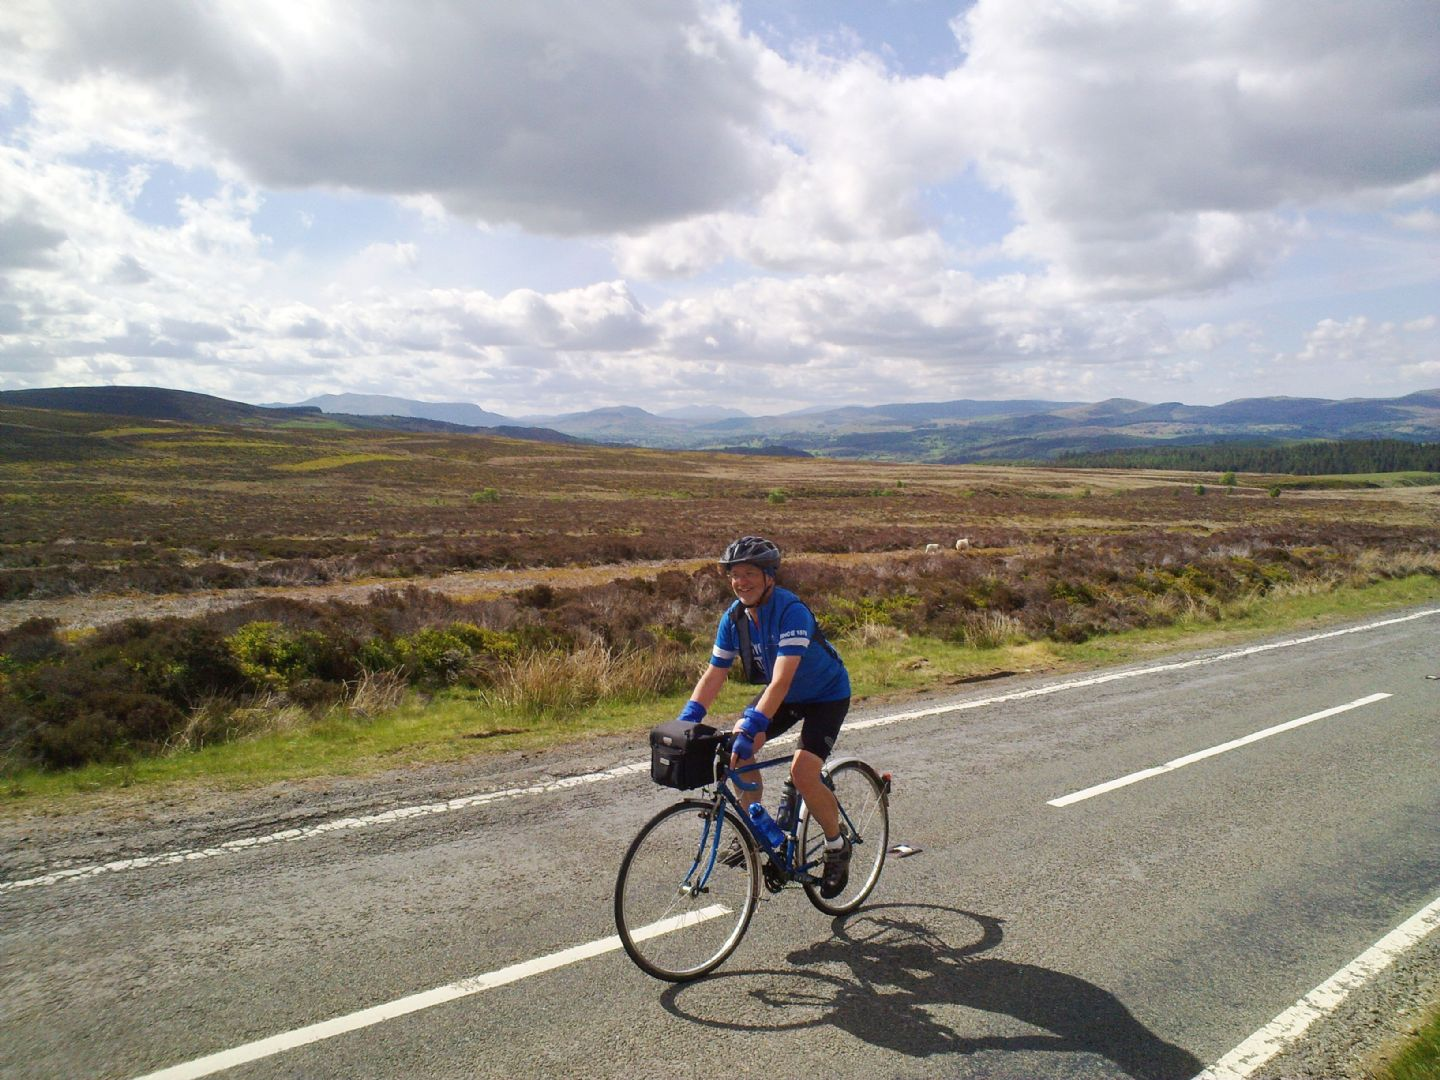 Road Cycling Weekend 21.jpg - UK - North Wales - Guided Road Cycling Weekend - Road Cycling